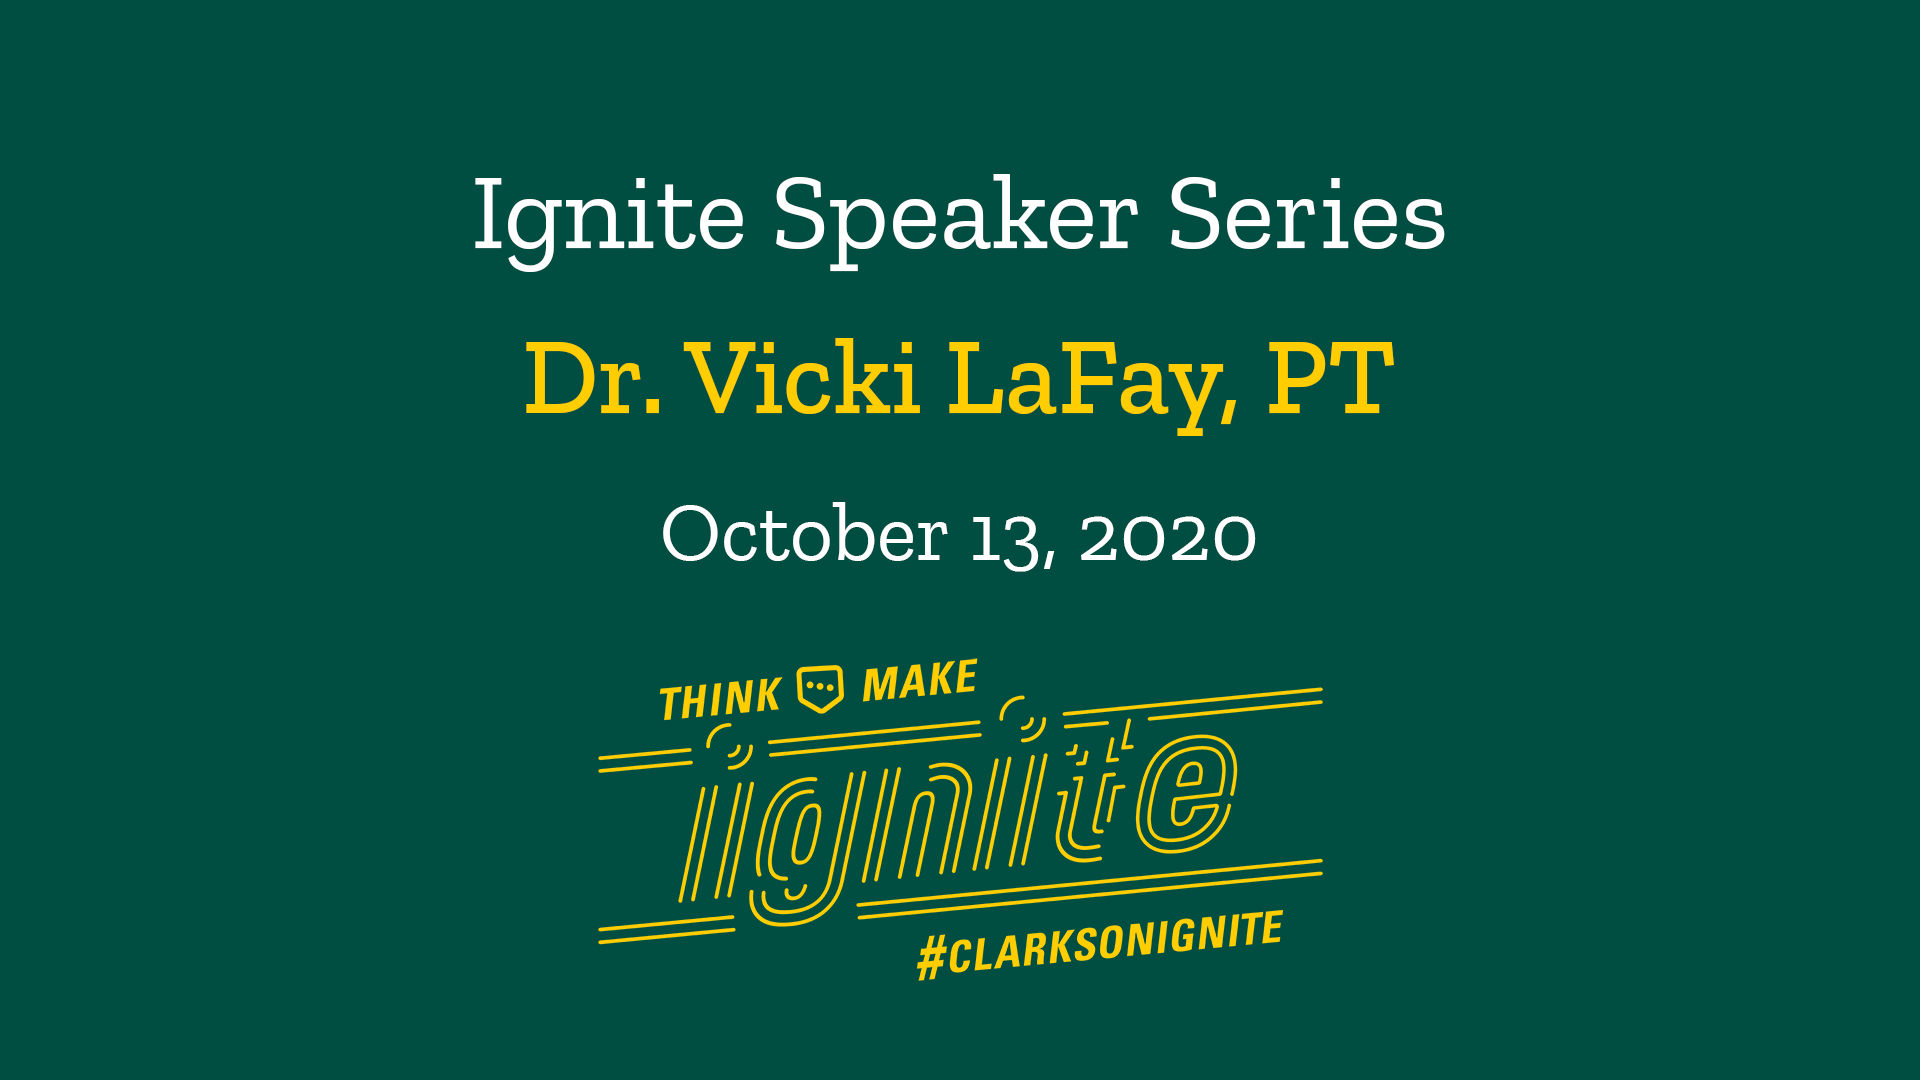 Ignite Speaker Series – October 13, 2020 2 PM